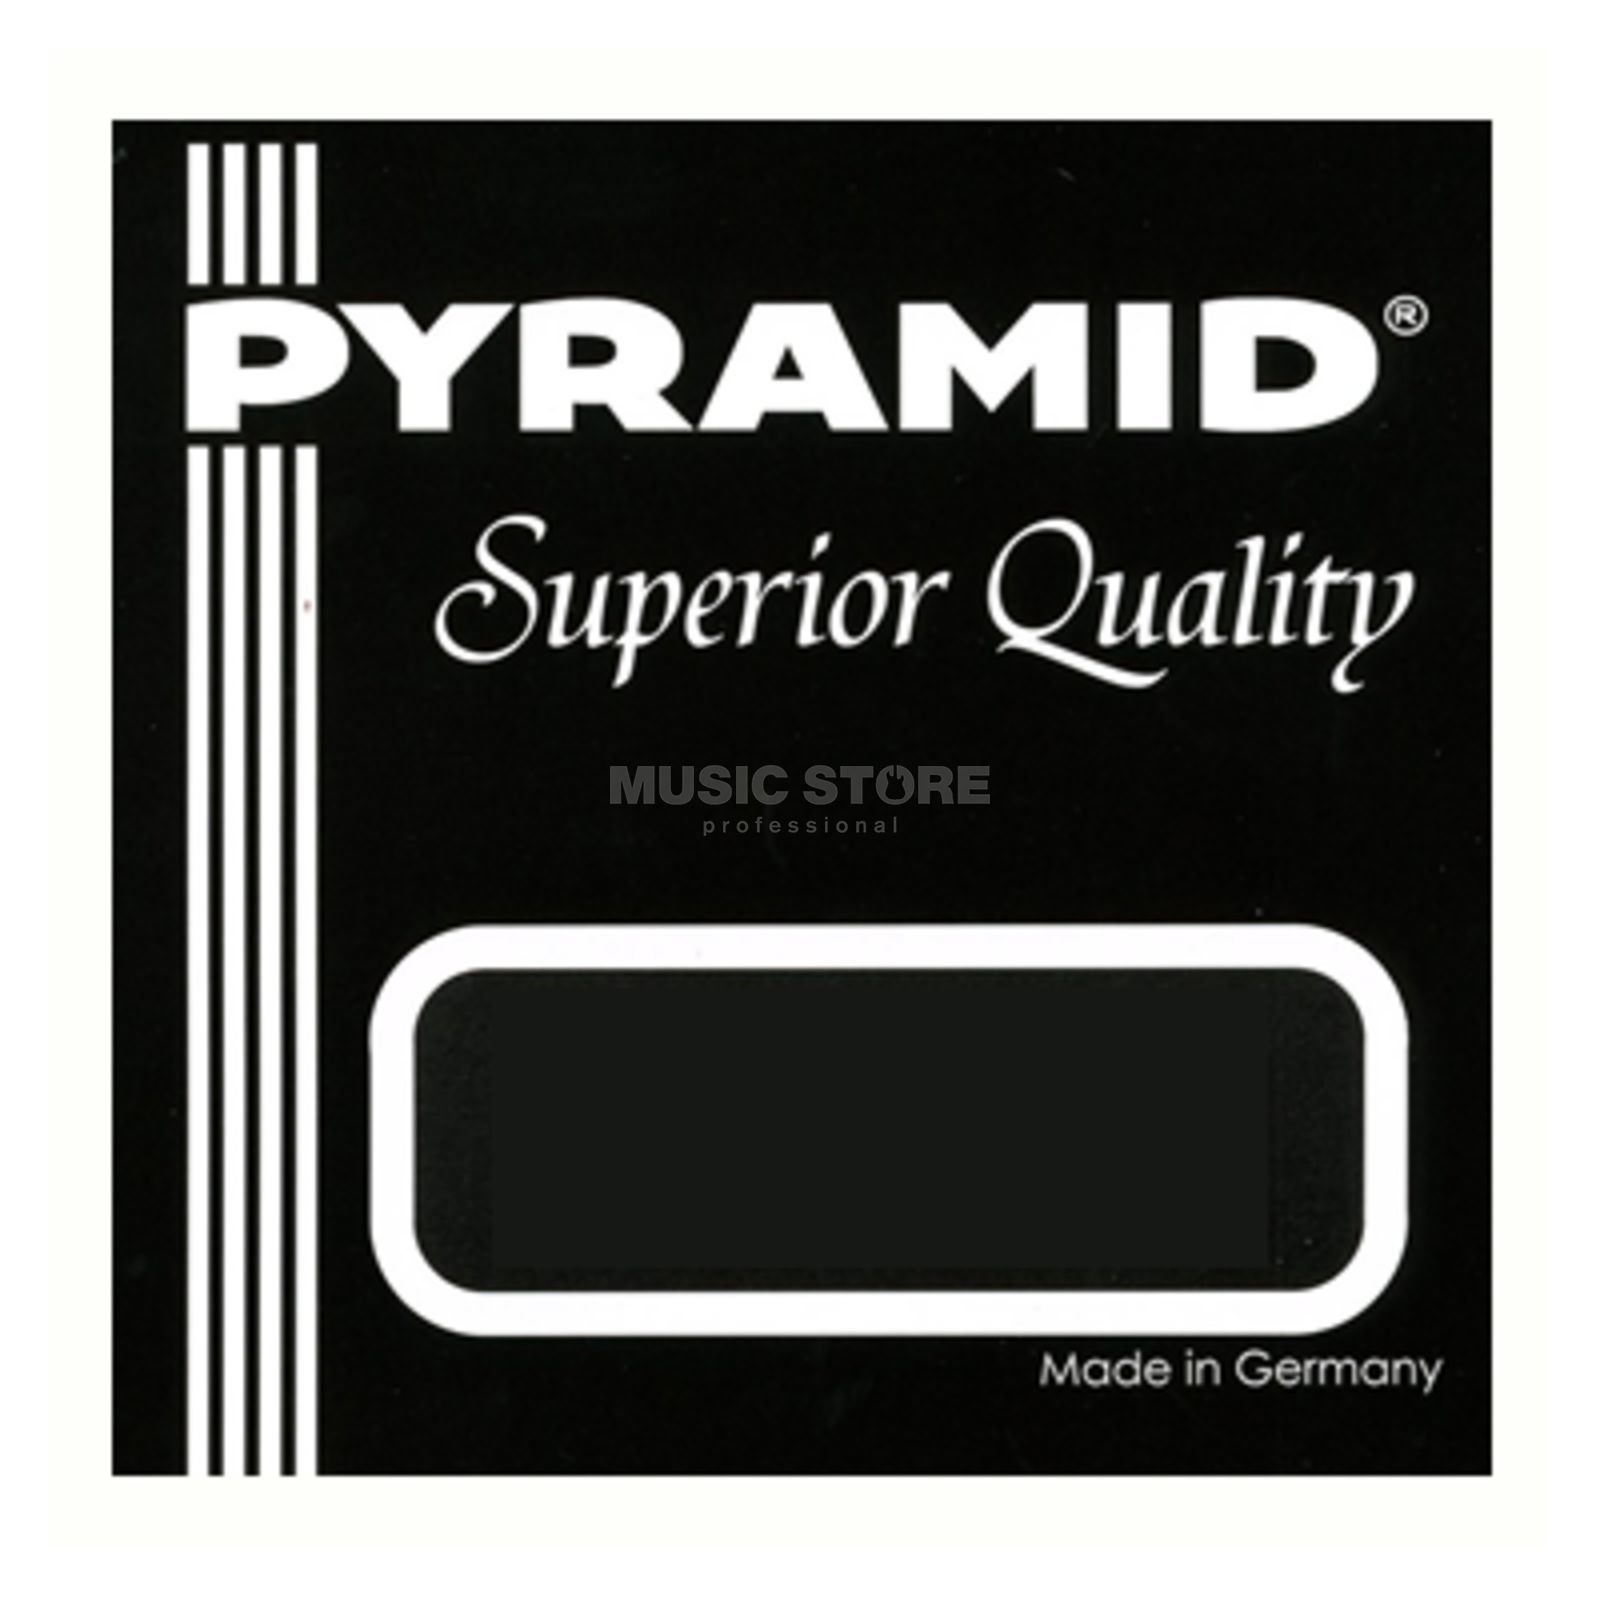 Pyramid Ukelele Bajo Superior Quality Acoust Silver Plated Copper on Nylon Imagen del producto